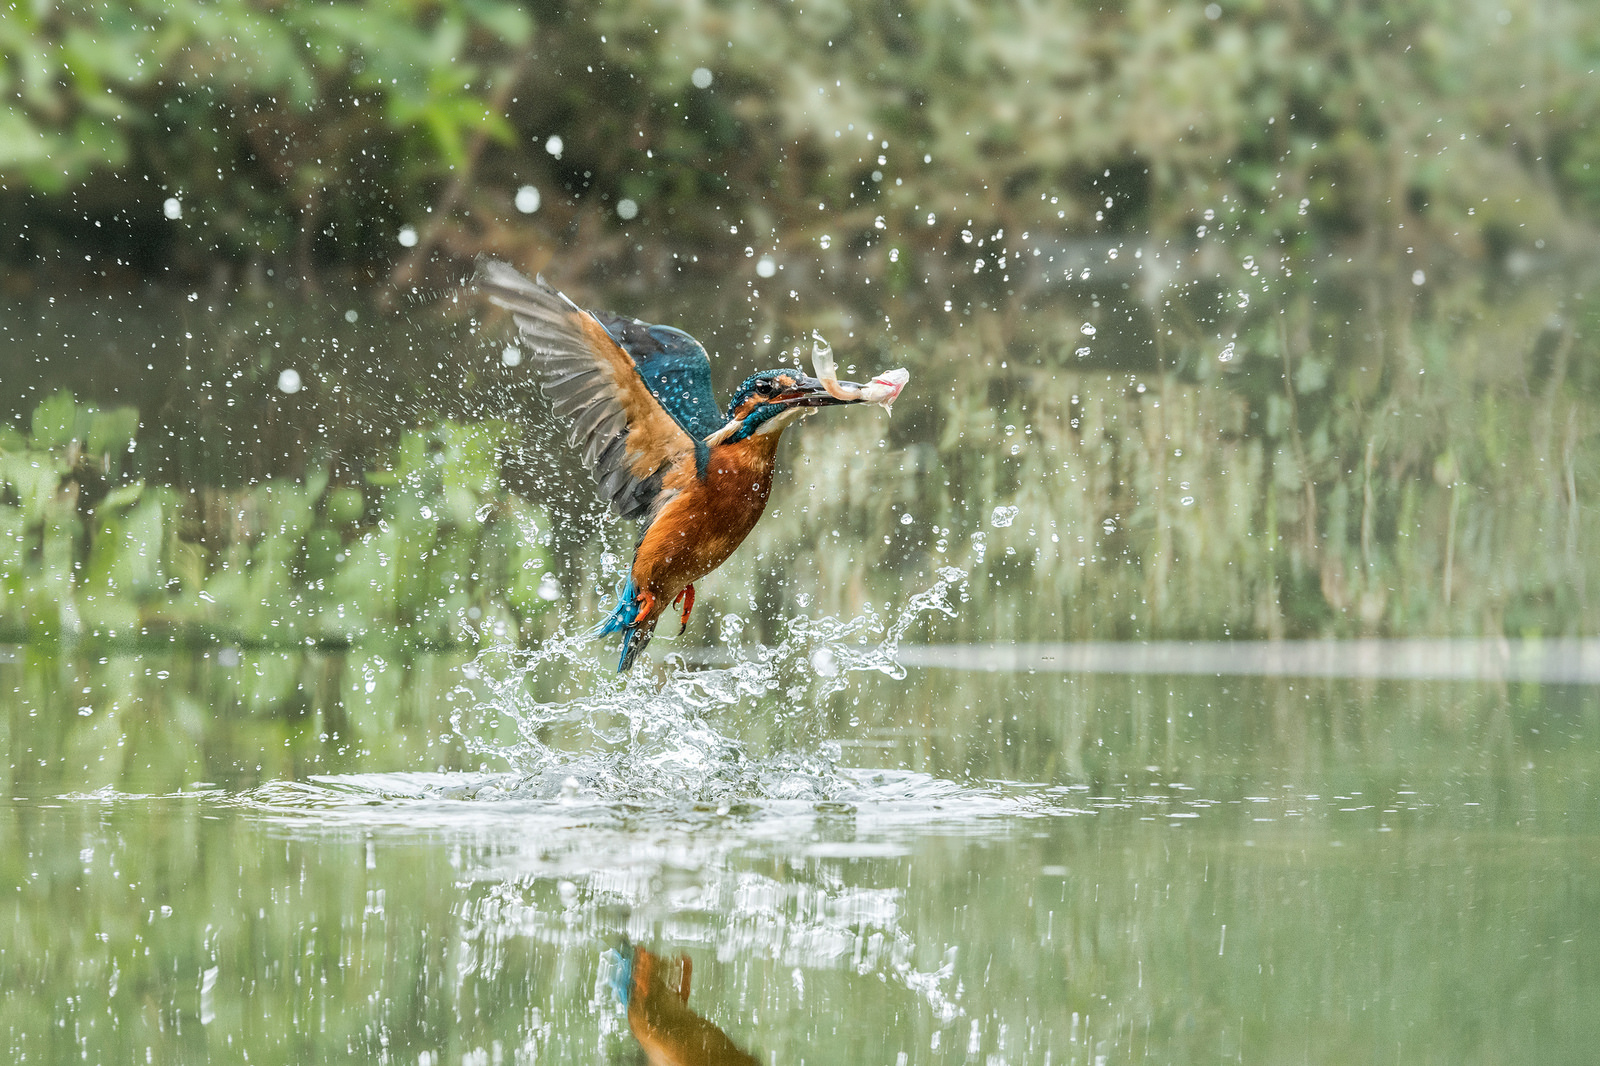 A kingfisher grabbing some food